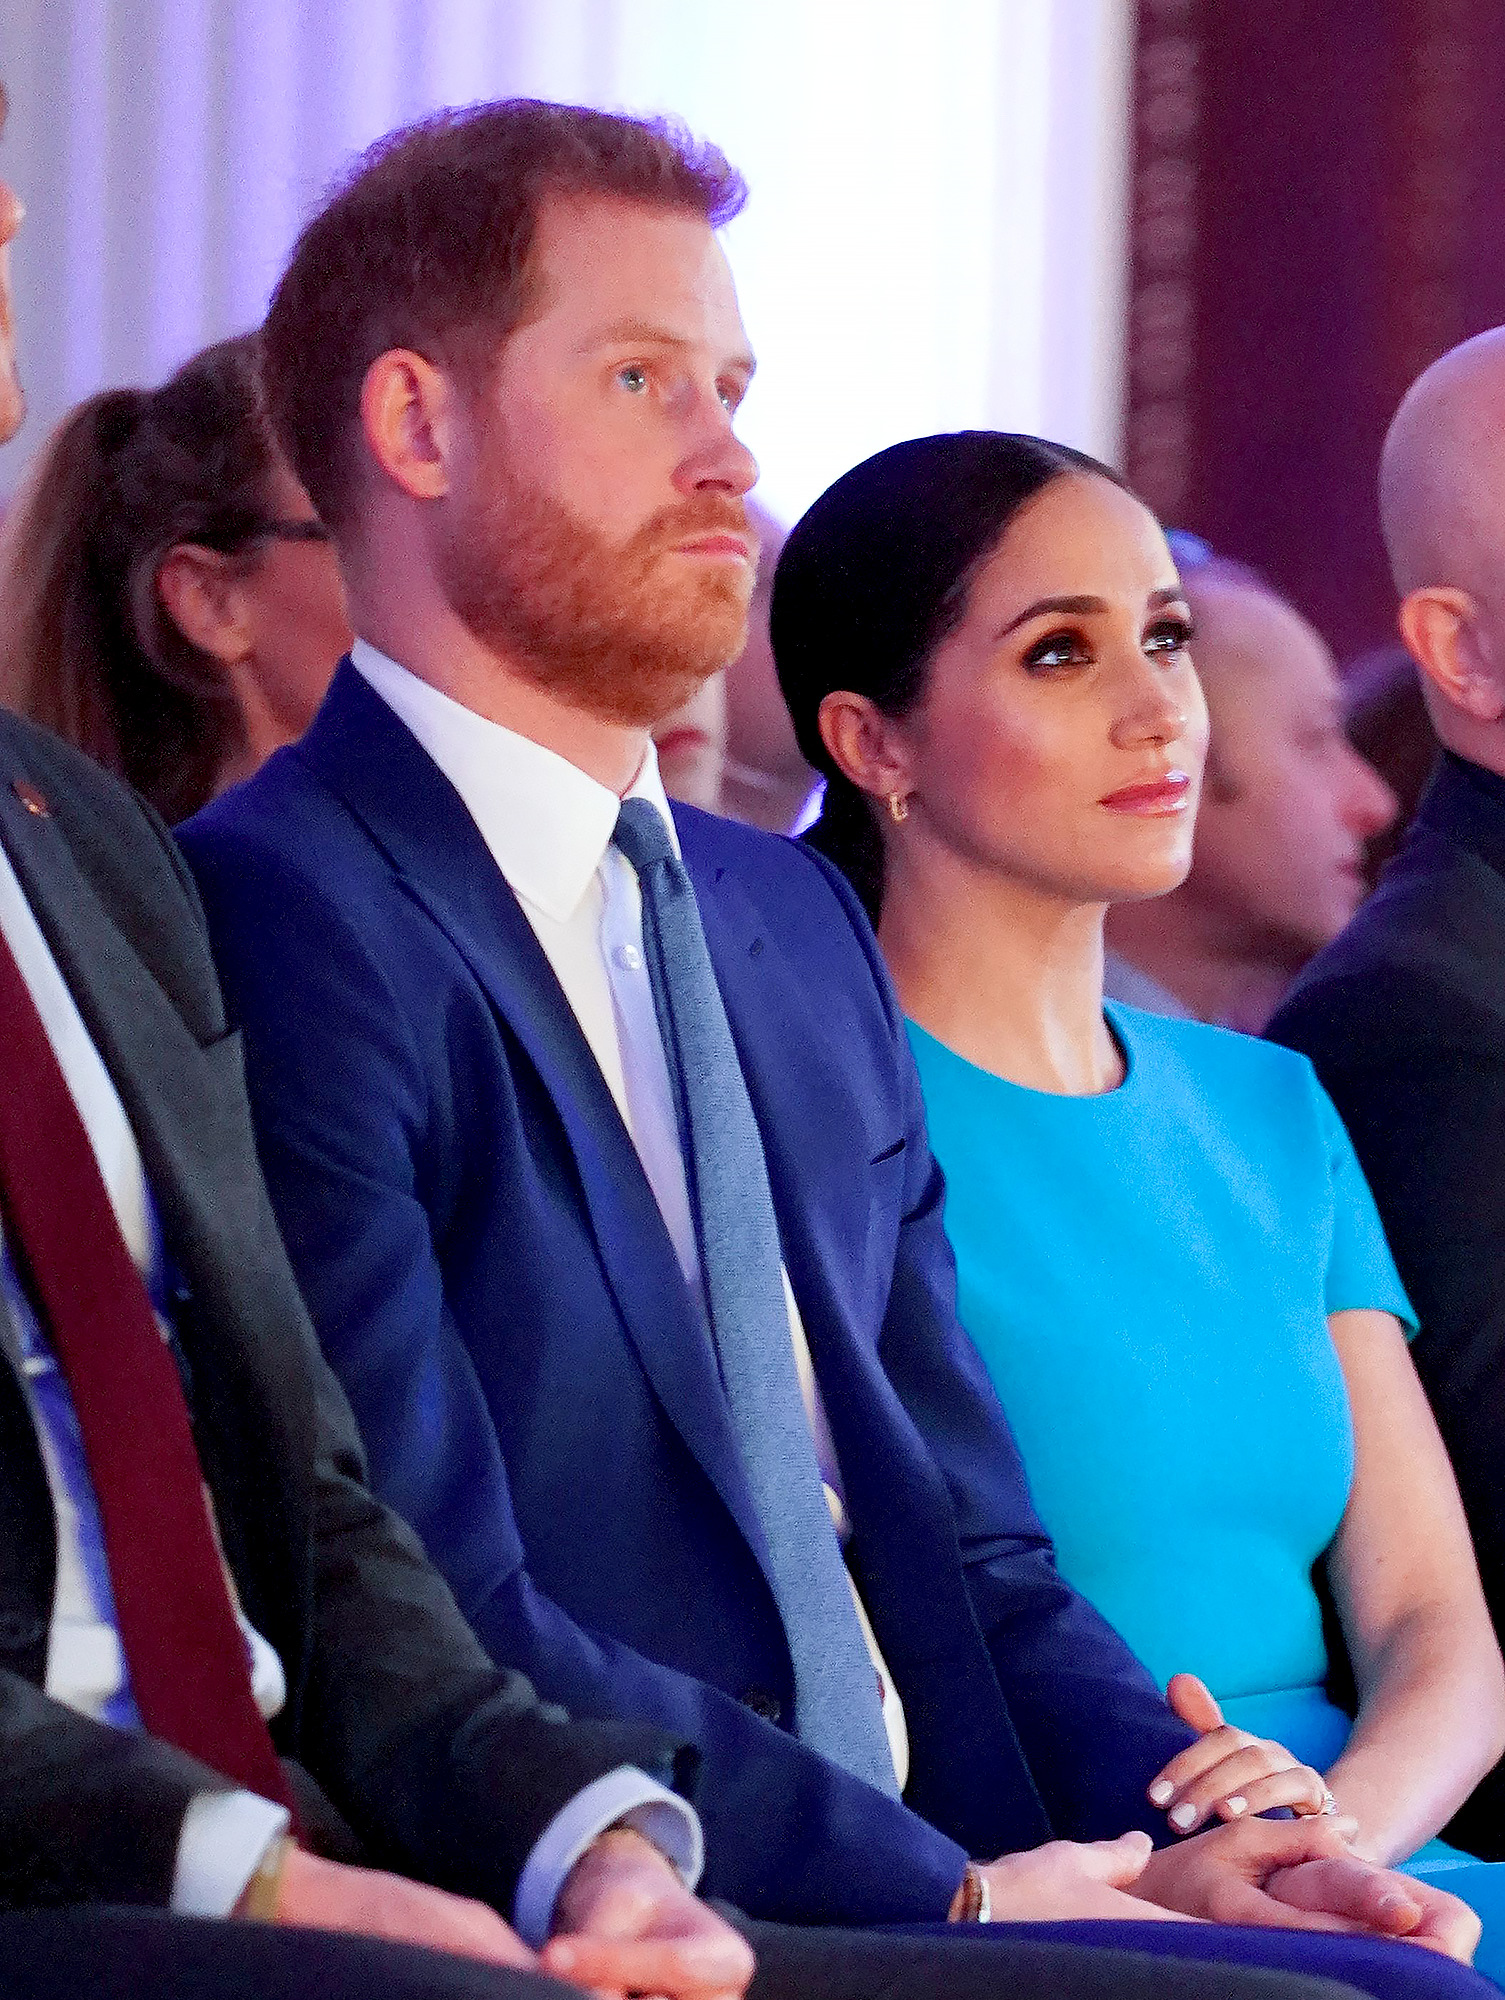 Prince Harry Meghan Markle Are Quarantined With Archie in Canada